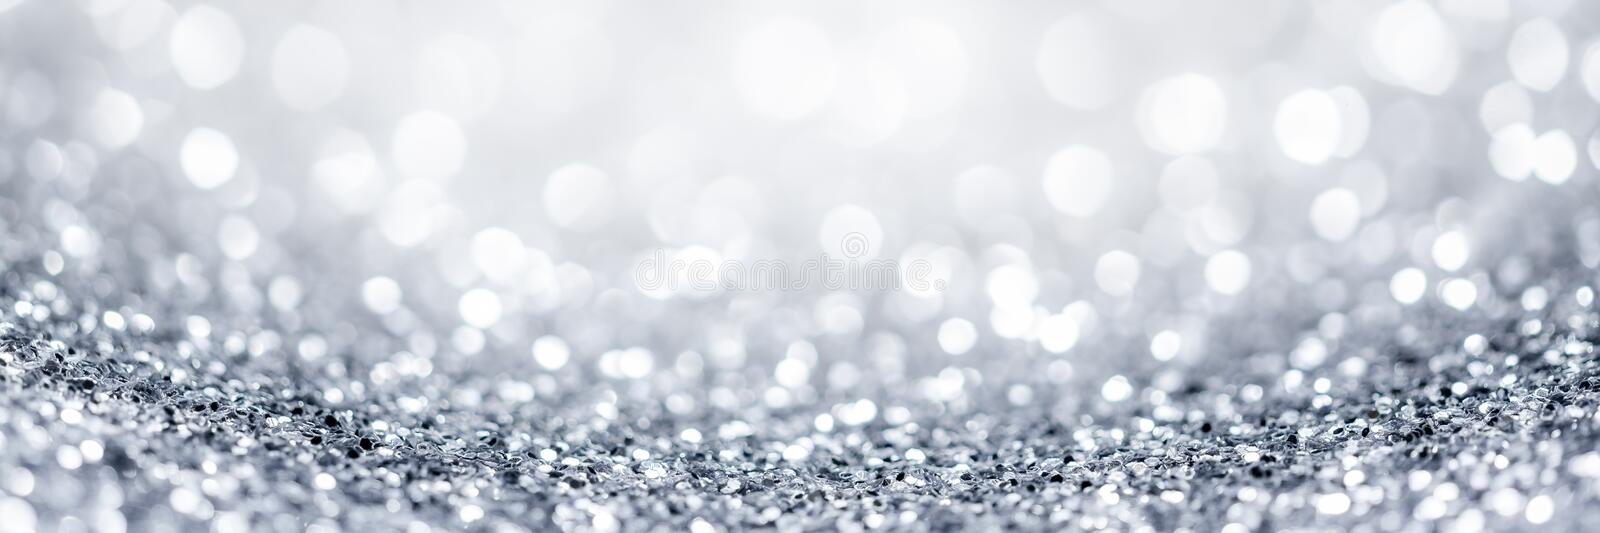 Fundo de prata do glitter fotografia de stock